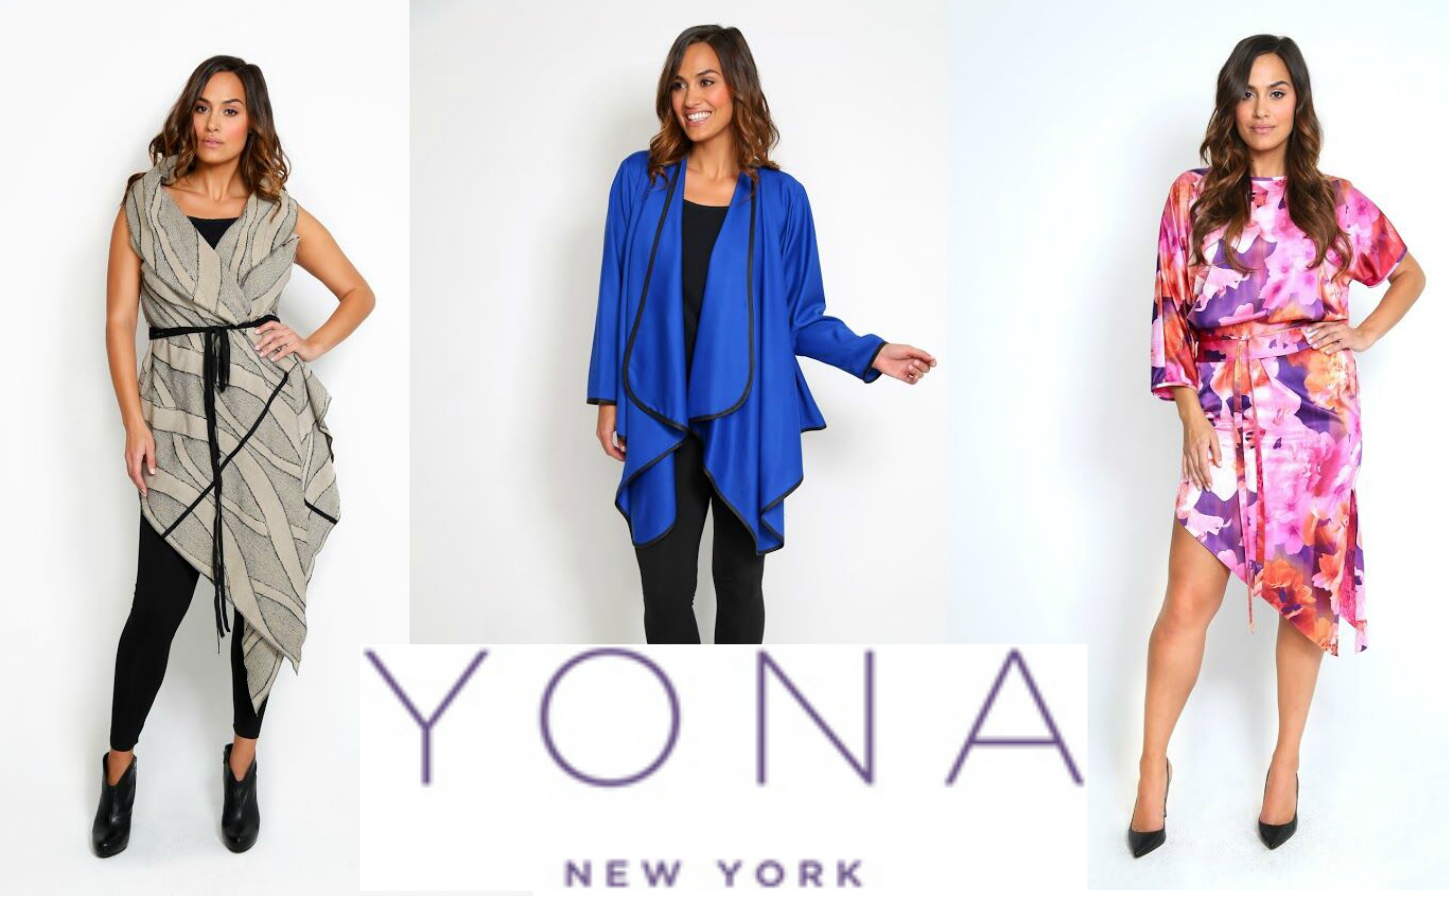 Meet Yona Love: Fashion Designer for the Professional & Chic Plus Size Woman!